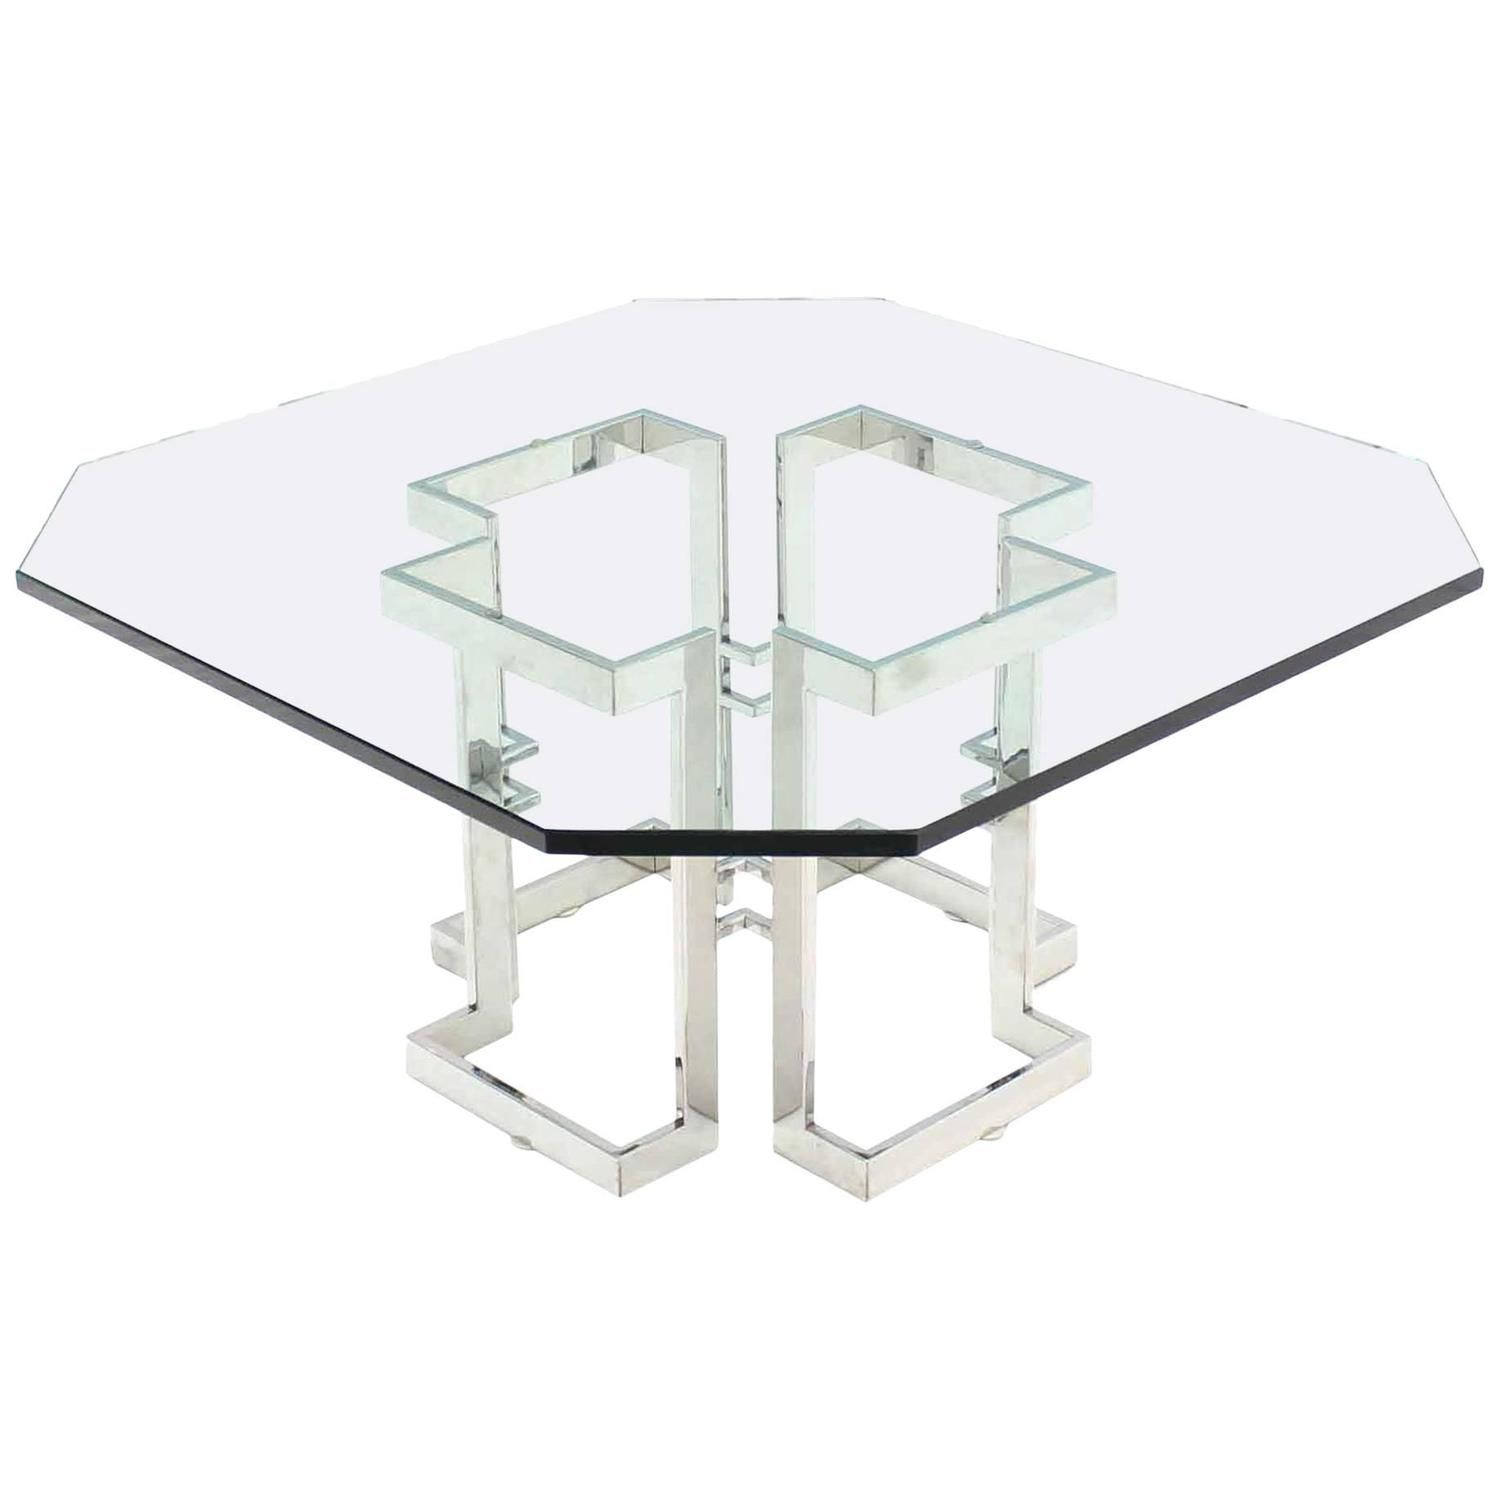 Artimeta Attributed Square Metal And Glass Coffee Table At: Square Chrome Base Glass Top Coffee Table